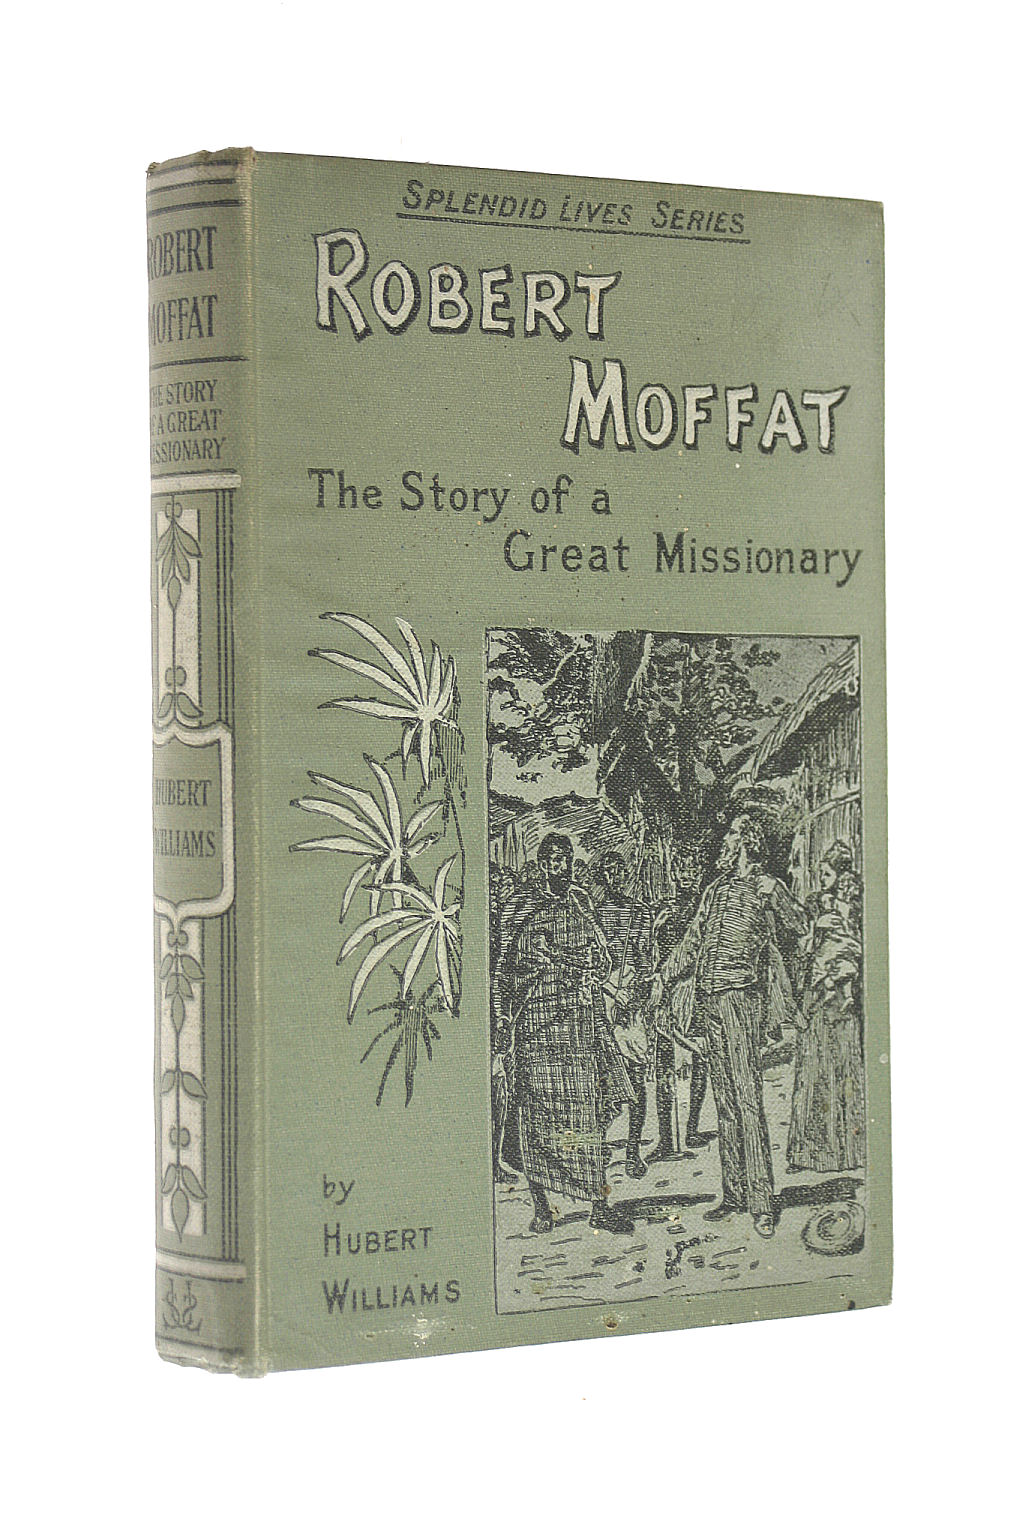 Image for Robert Moffat: The story of a long life in the South African mission field (Splendid lives series)